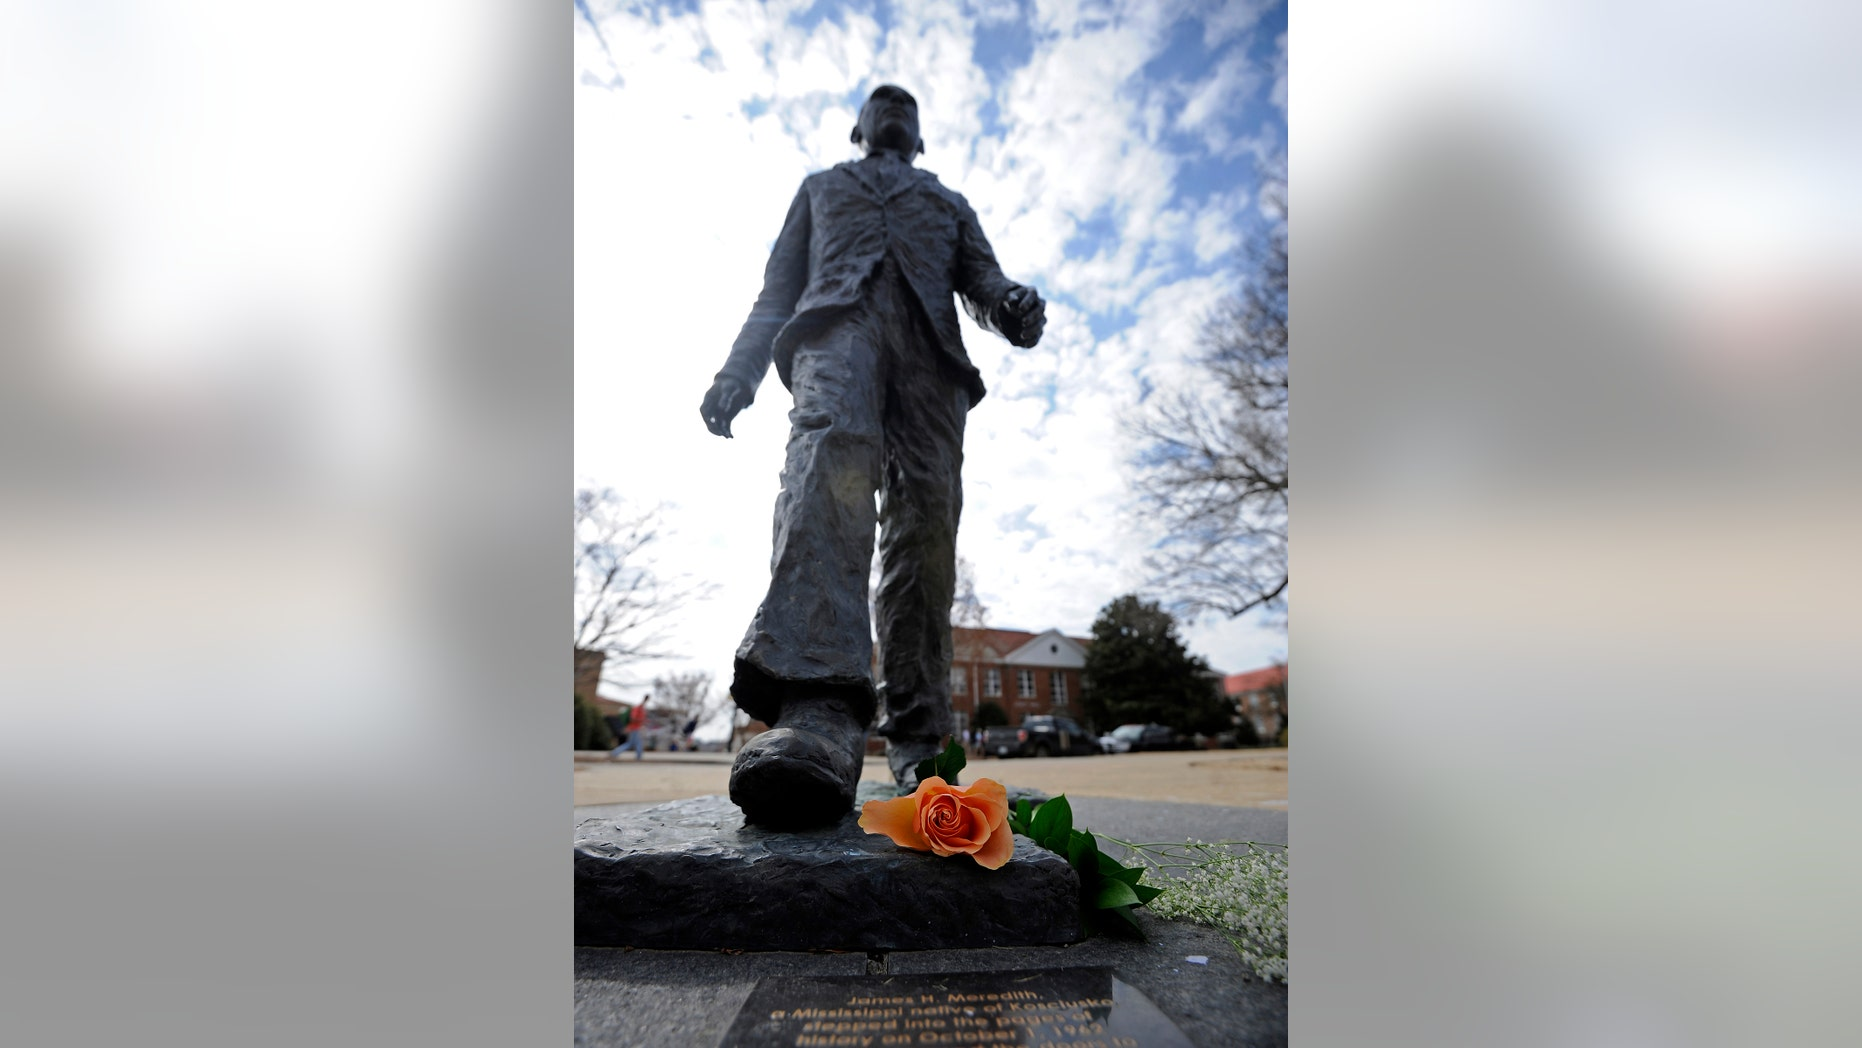 A flower is seen on the James Meredith statue at the University of Mississippi in Oxford, Miss., Tuesday, Feb. 18, 2014.  Campus police at the University of Mississippi are checking video surveillance footage in the area around a statue of James Meredith that was found sullied Sunday morning.  (AP Photo/The Daily Mississippian, Thomas Graning)